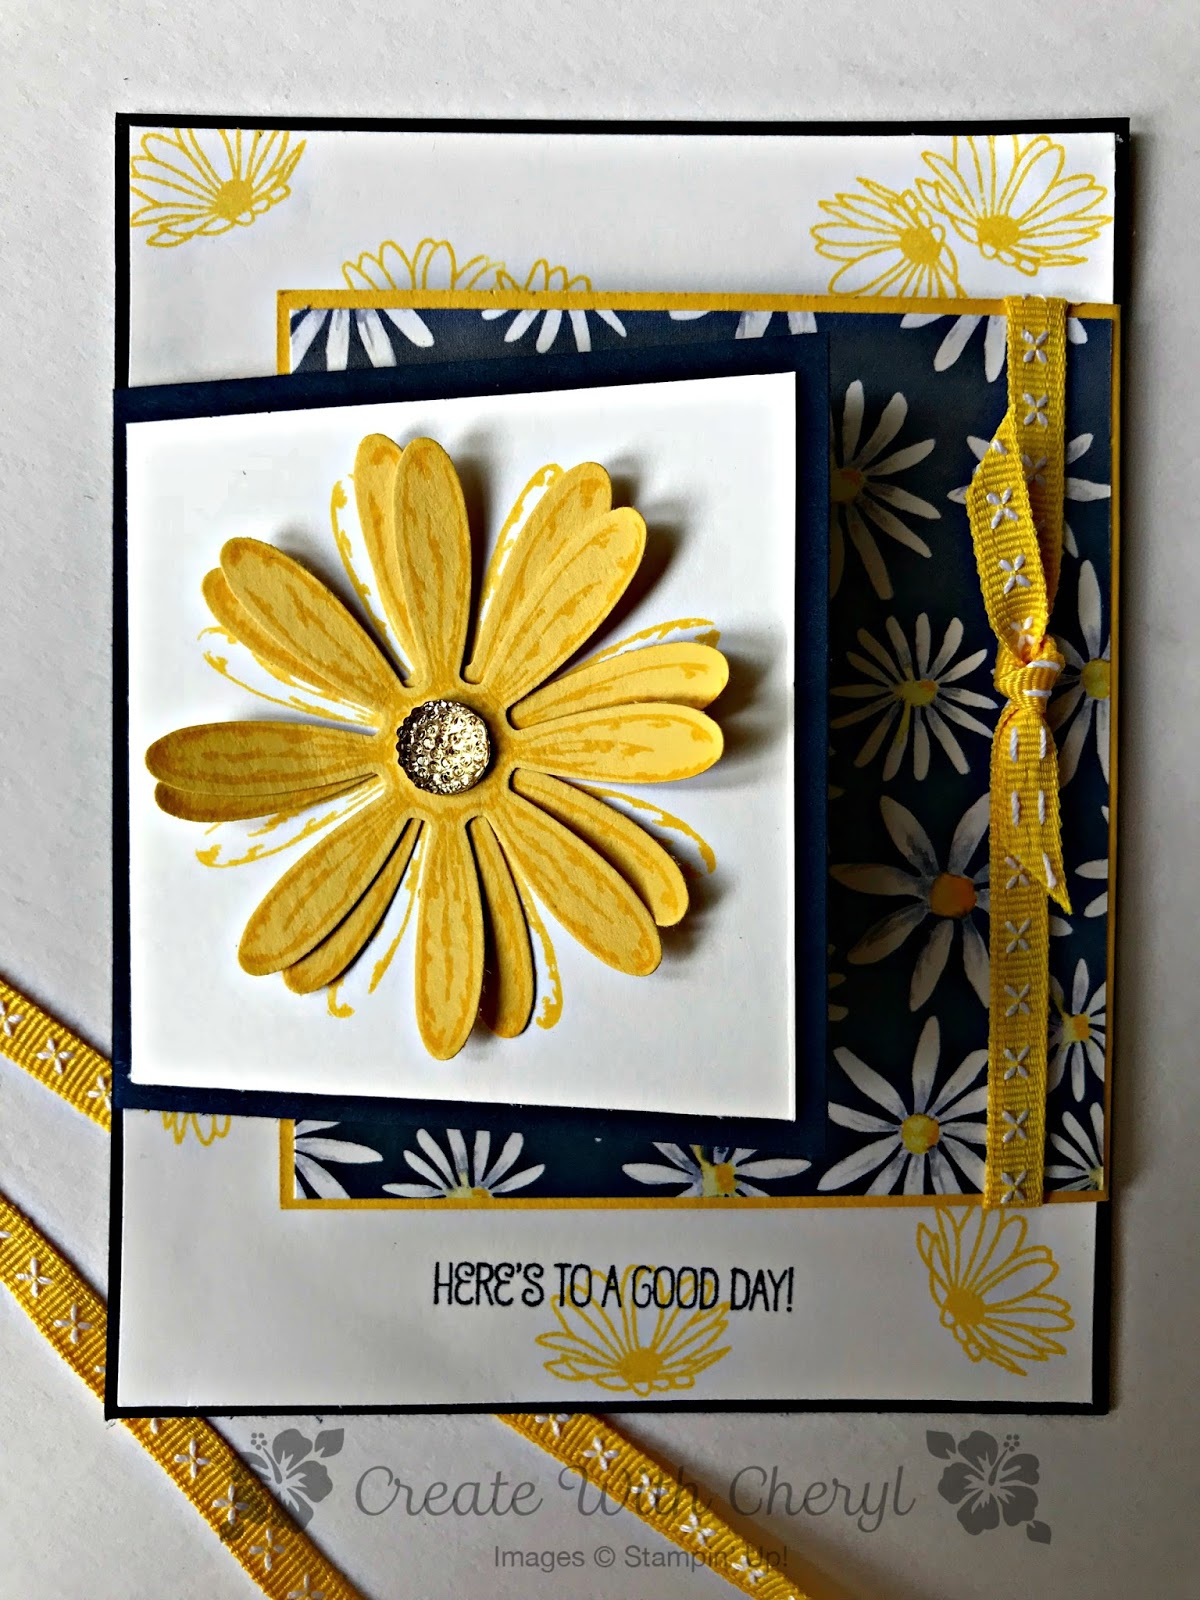 pincindi brewer on flower cards  daisy cards fancy